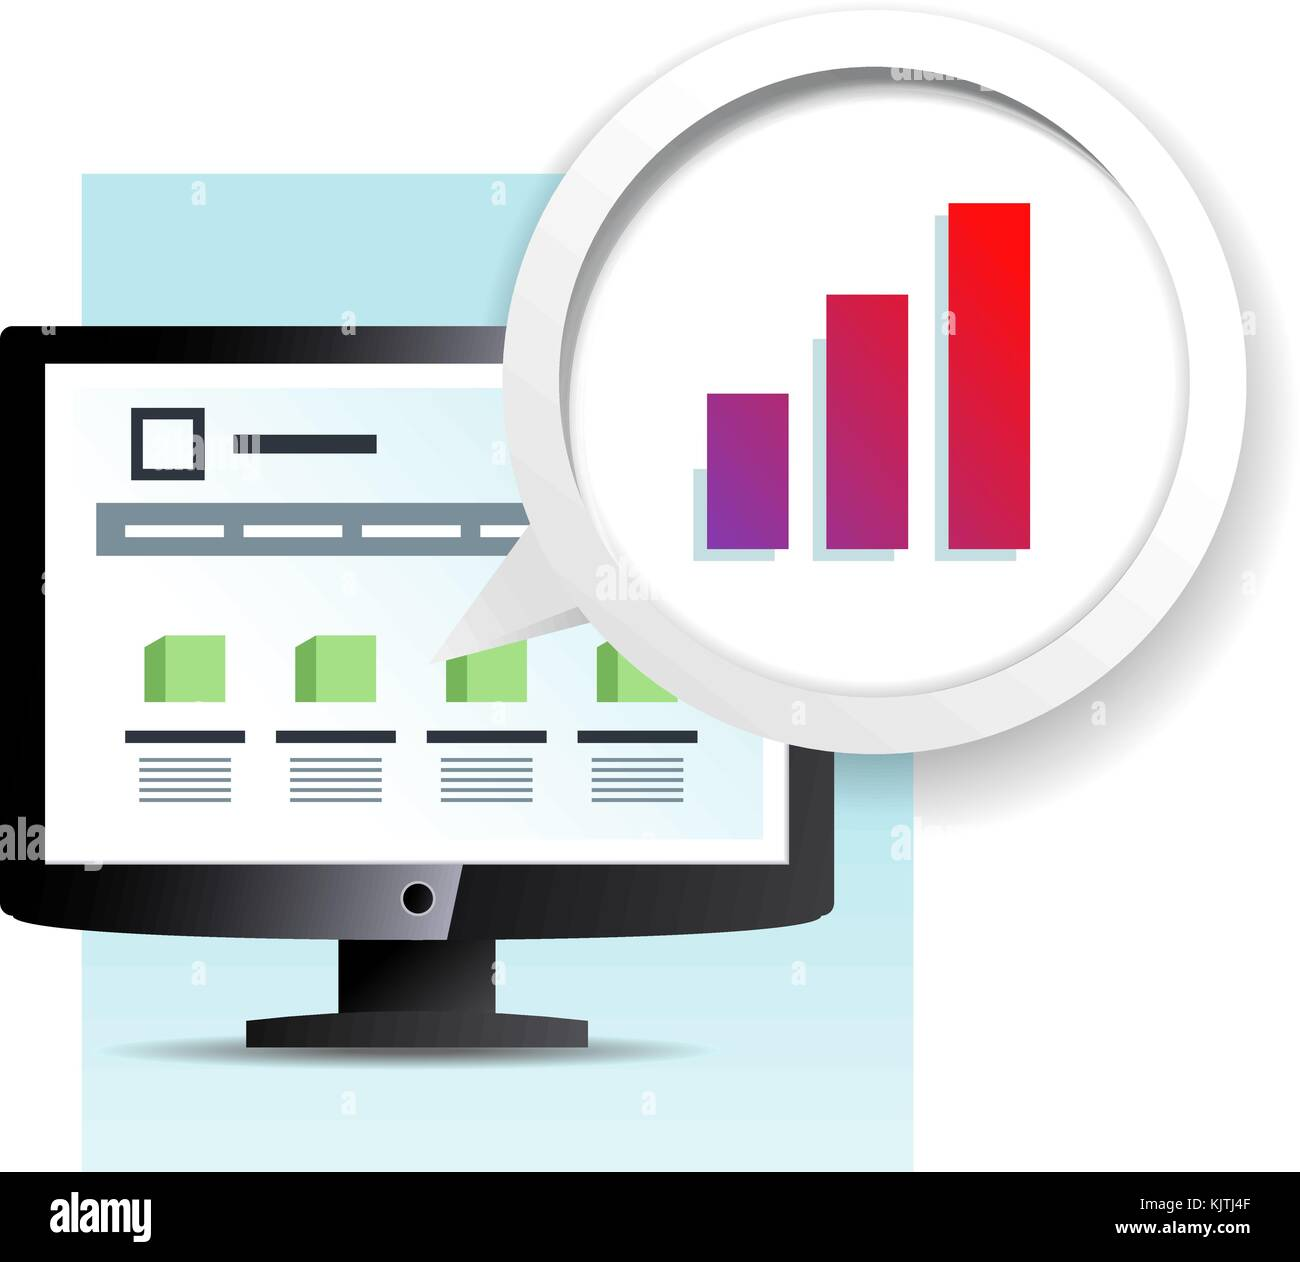 web page on the monitor icon - Stock Image